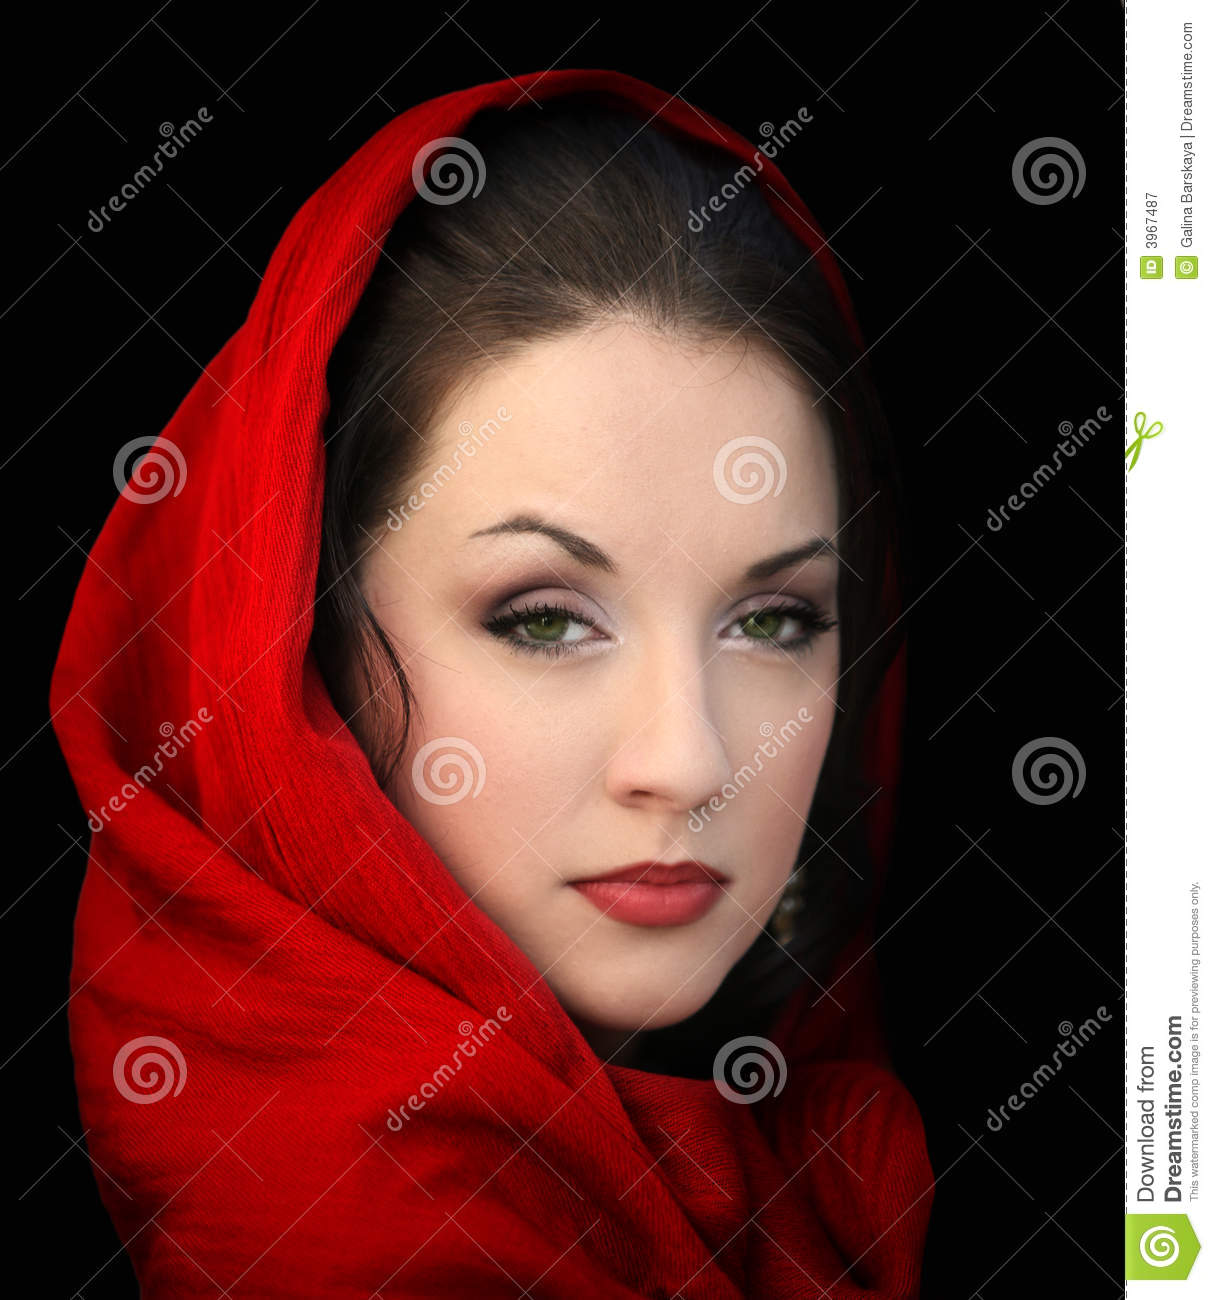 Speaking, opinion, the girl in the red scarf